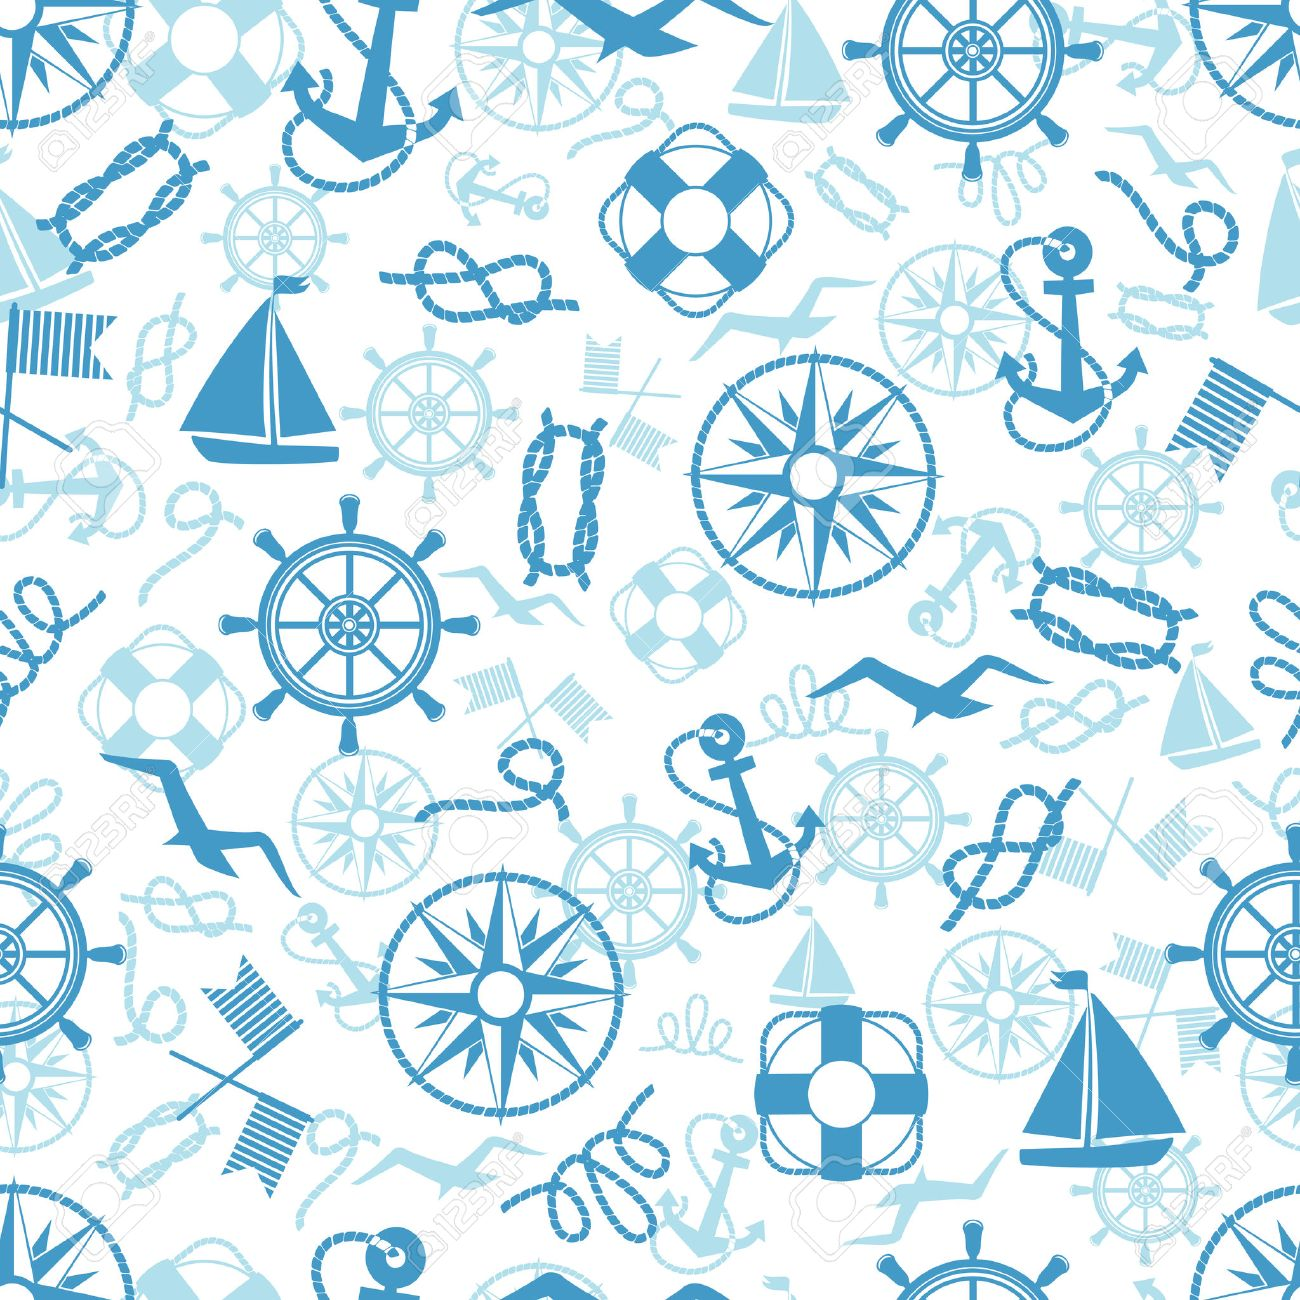 Nautical or marine themed seamless pattern with anchors life buoys ropes knots compass yacht semaphore flags